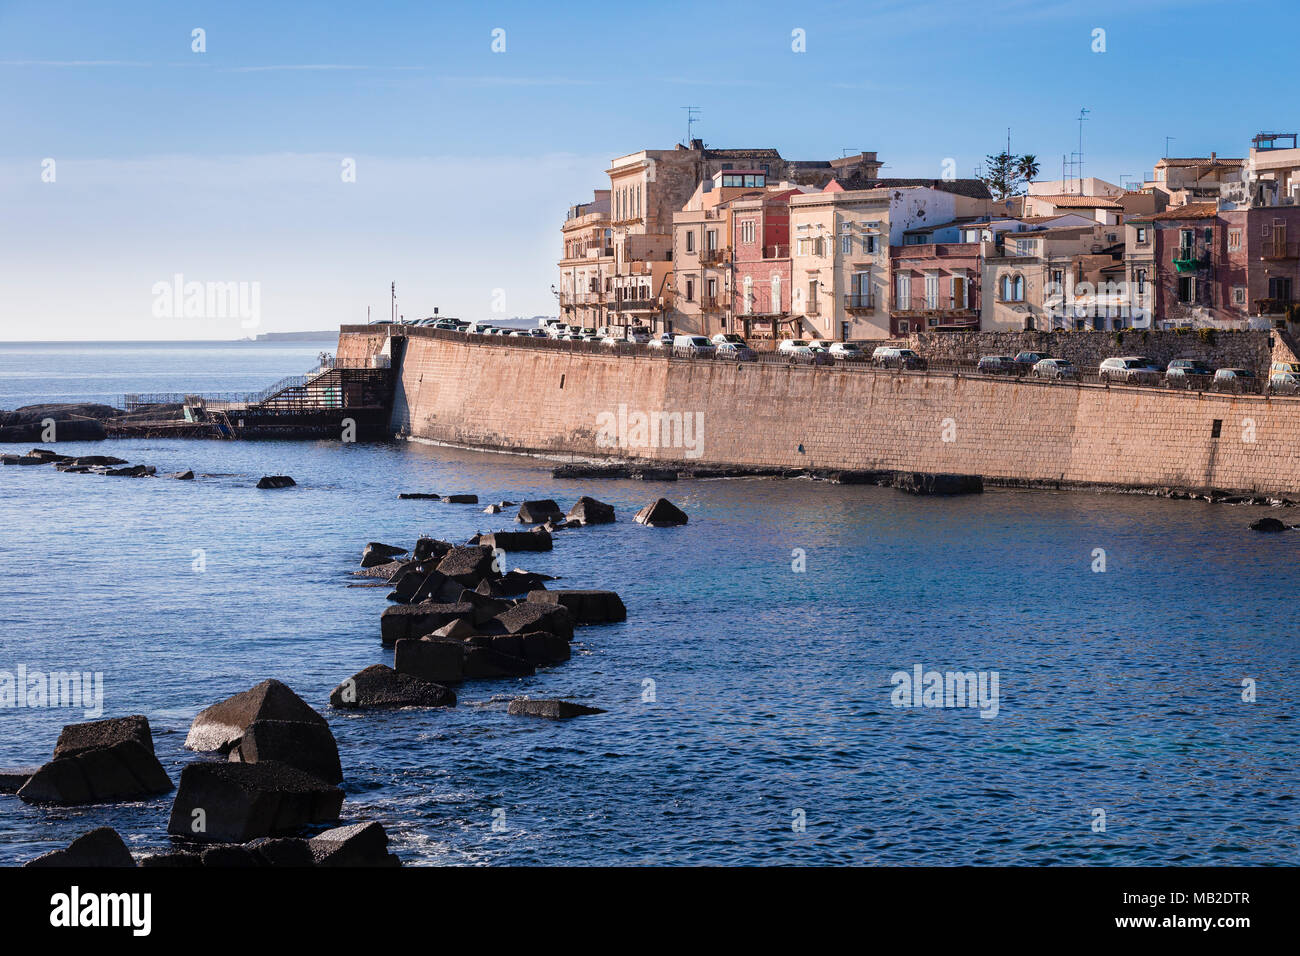 The eastern waterfront of Ortigia, Siracusa, Sicliy. - Stock Image